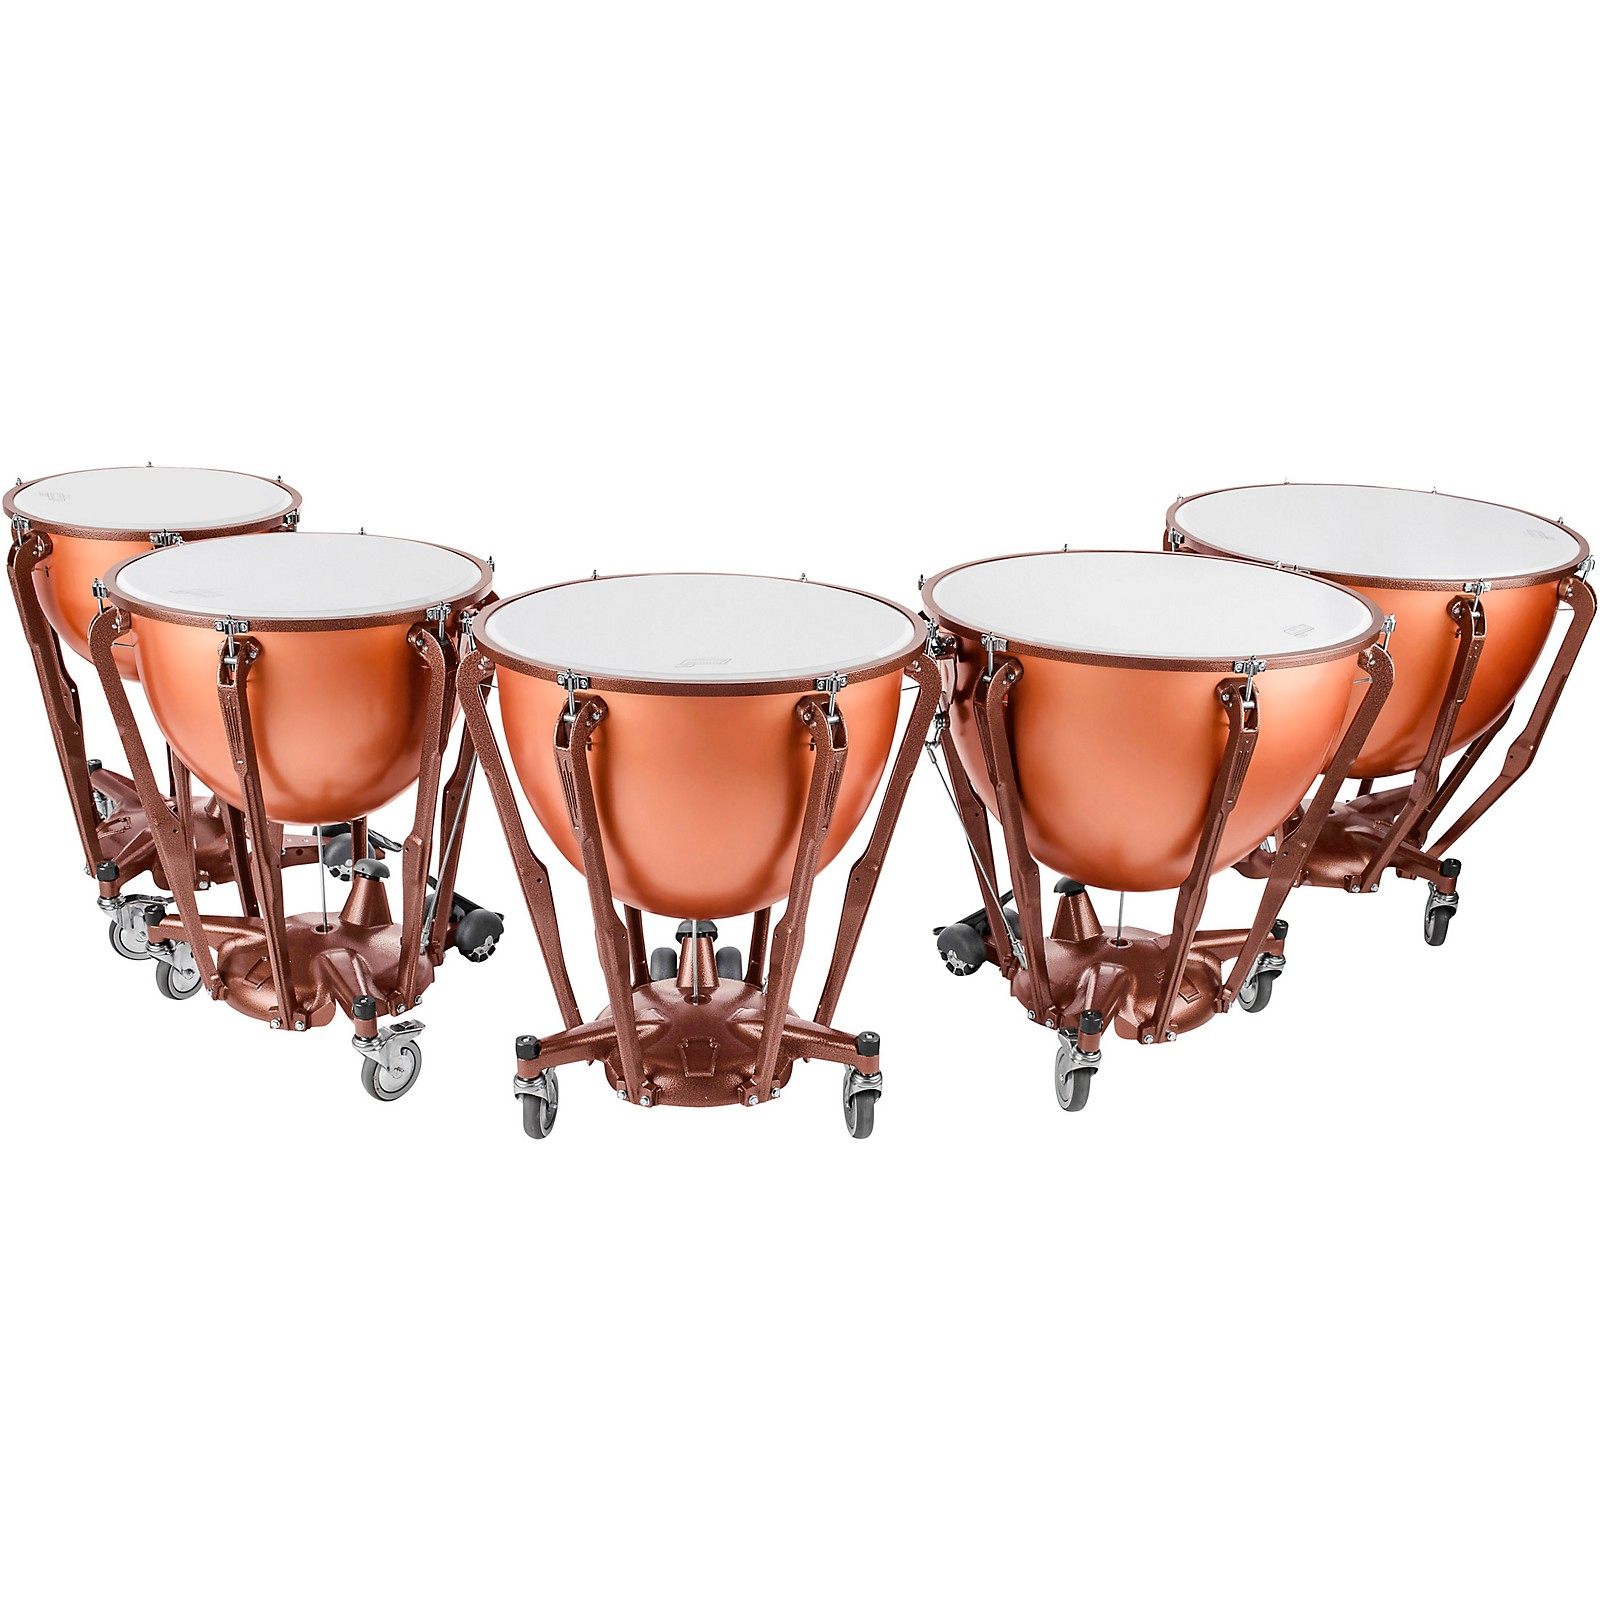 Ludwig Standard Series Fiberglass Timpani Set with Gauge